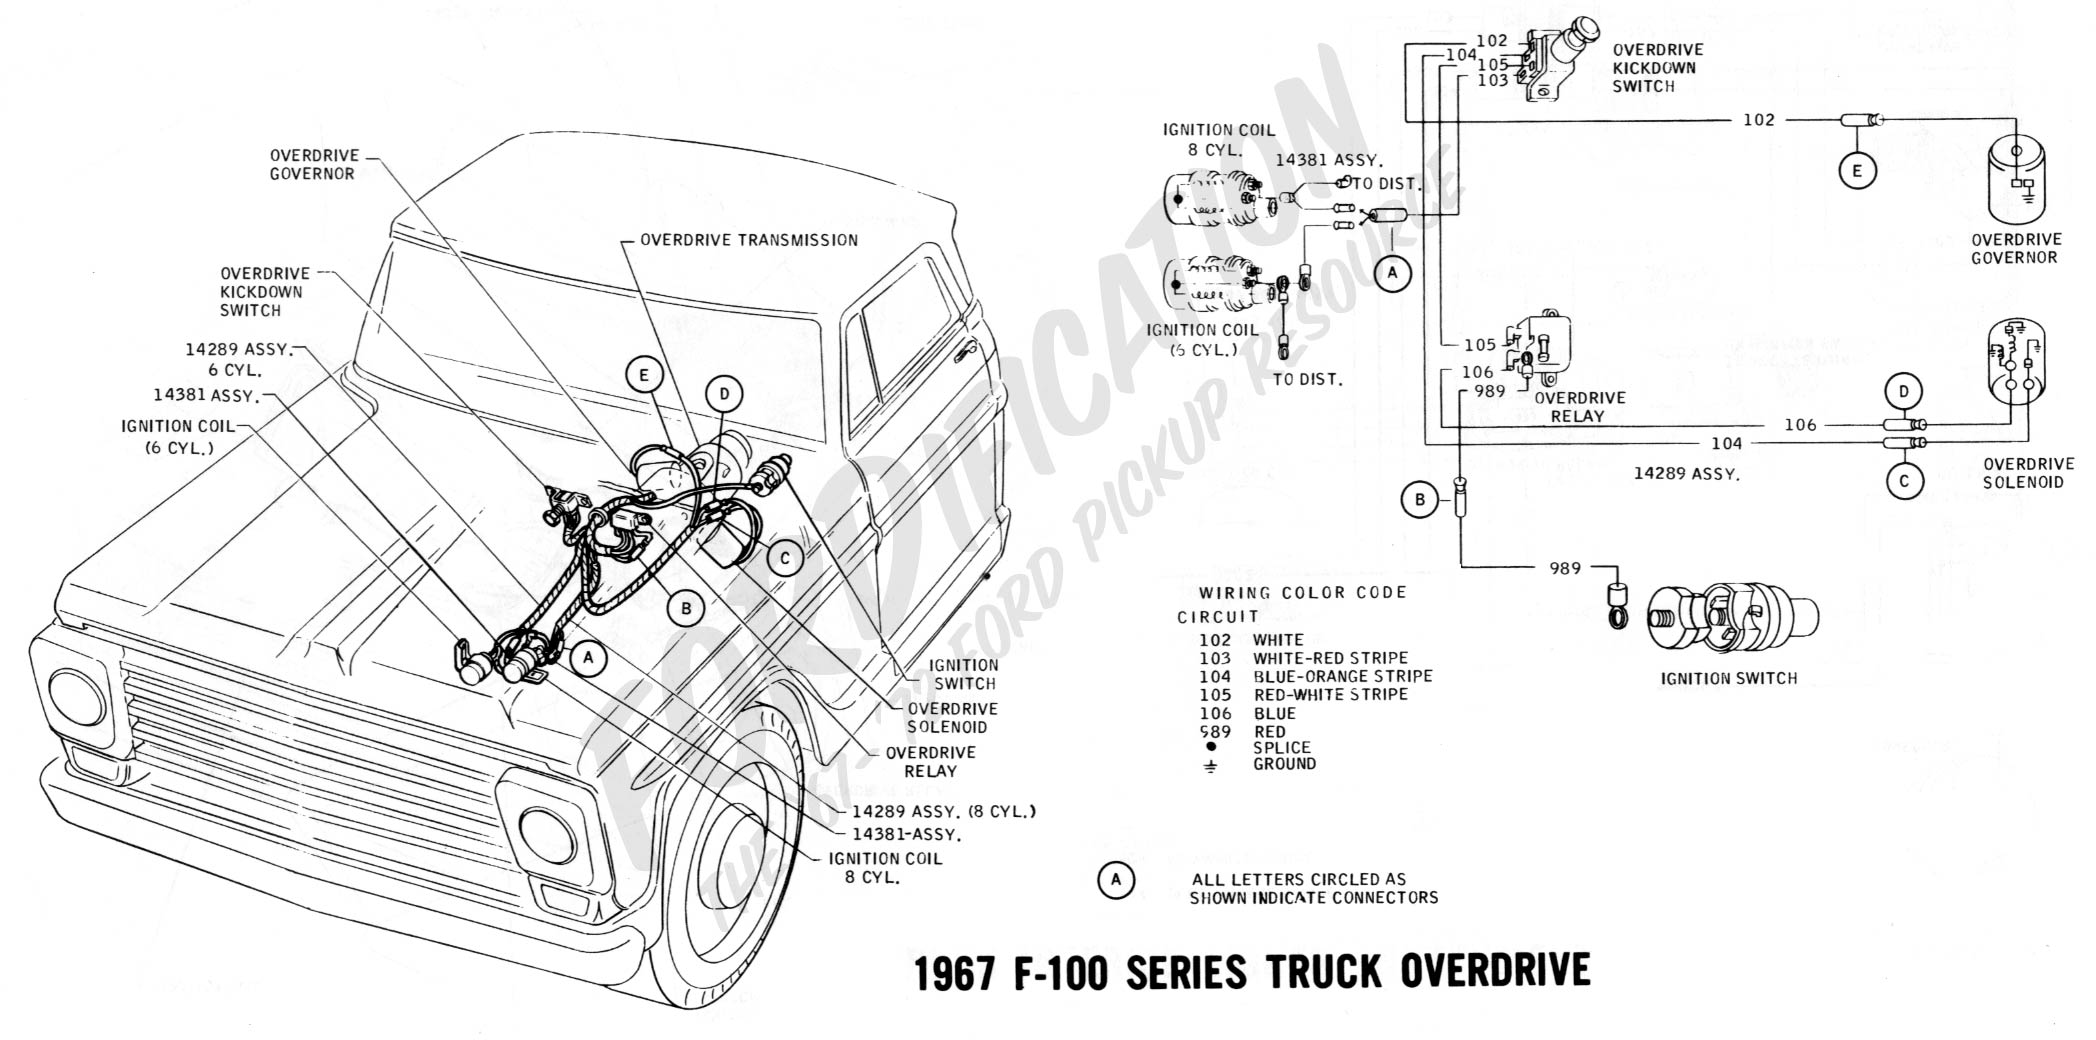 wiring 1967overdrive2 ford truck technical drawings and schematics section h wiring isuzu box truck wiring diagram at suagrazia.org